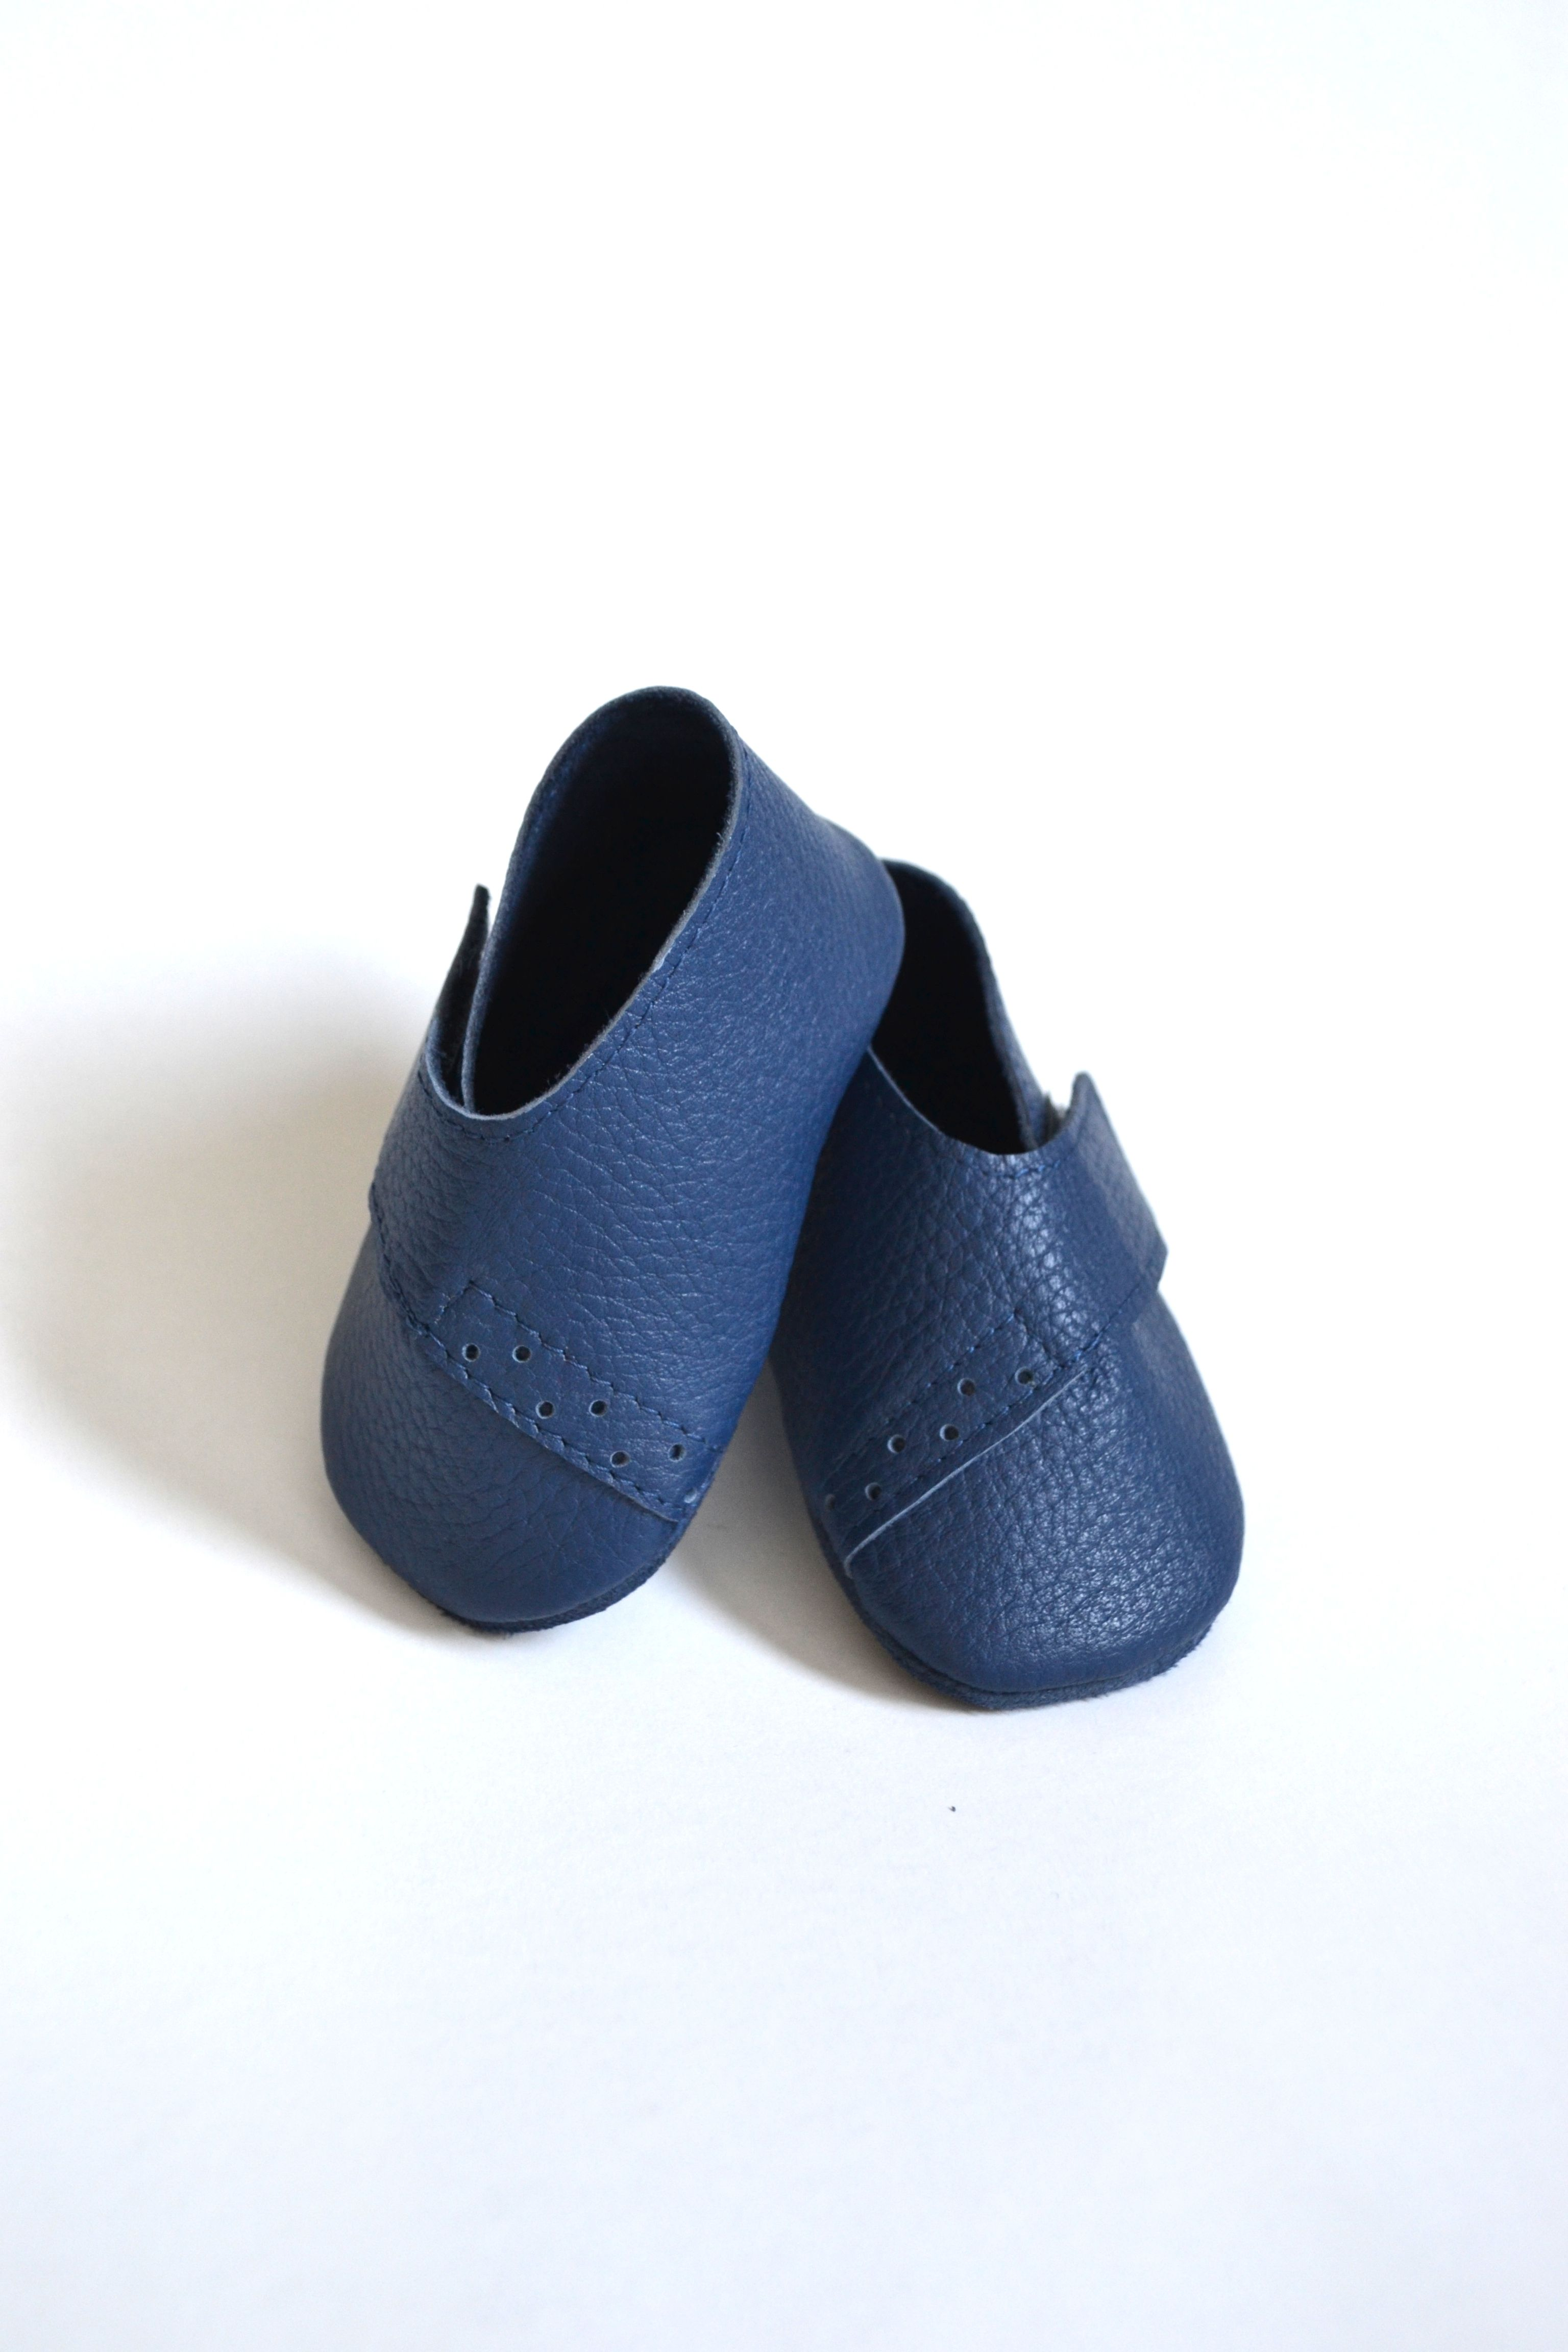 Blue leather baby boy shoes, Navy baby slippers, Baby leather ...